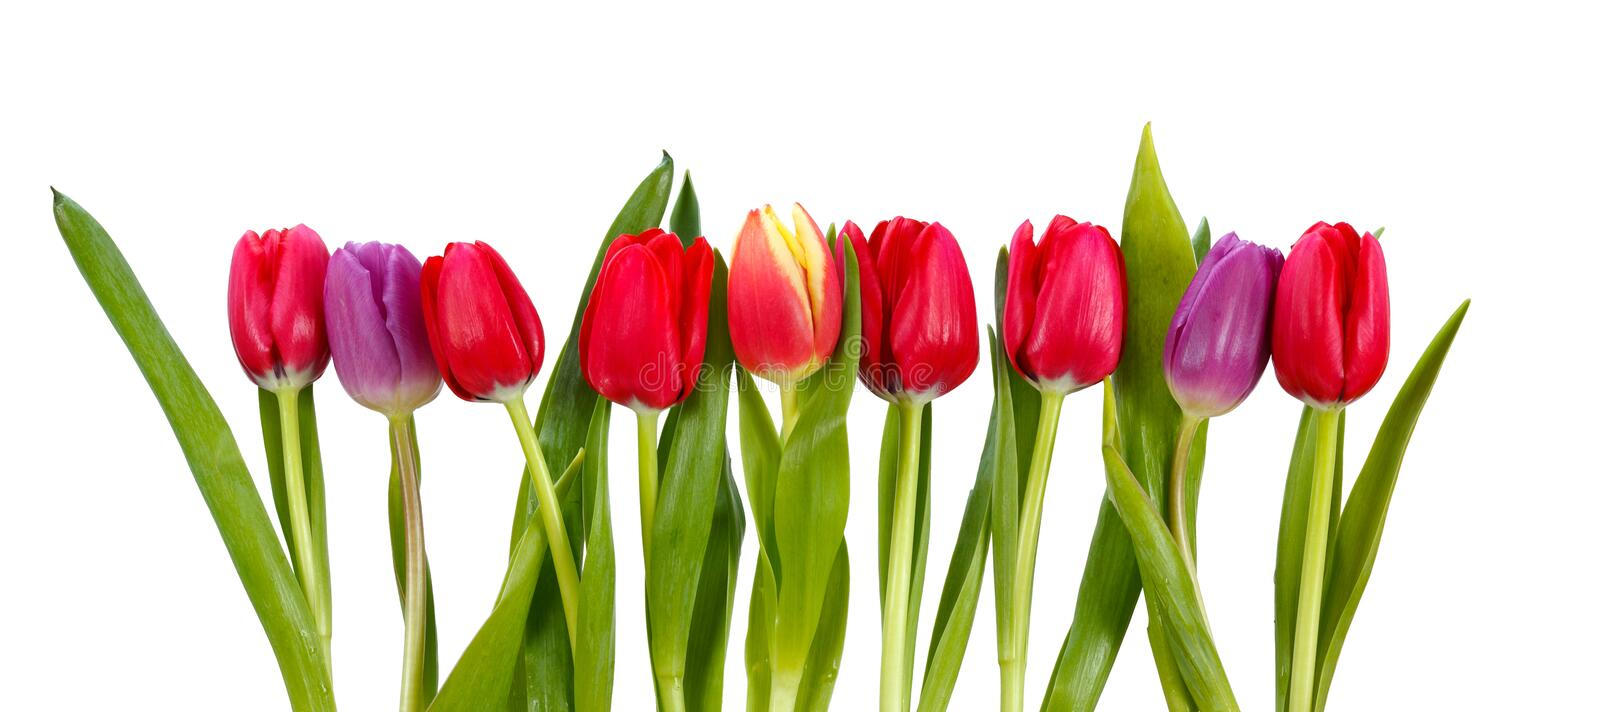 Row of tulips stock images